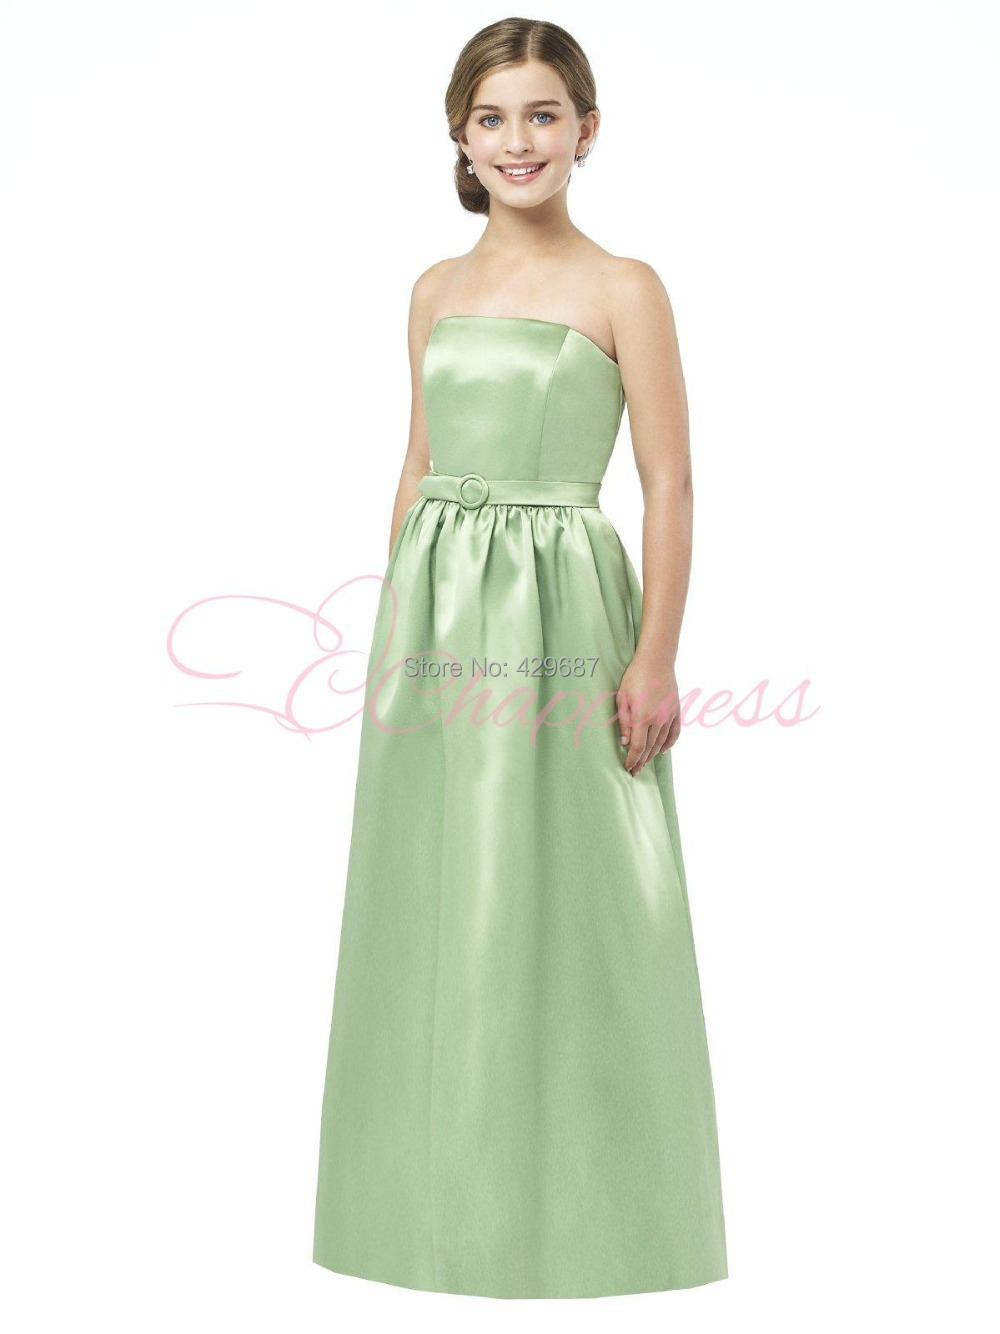 Mint green strapless bridesmaid dresses naf dresses - Buy Low Price